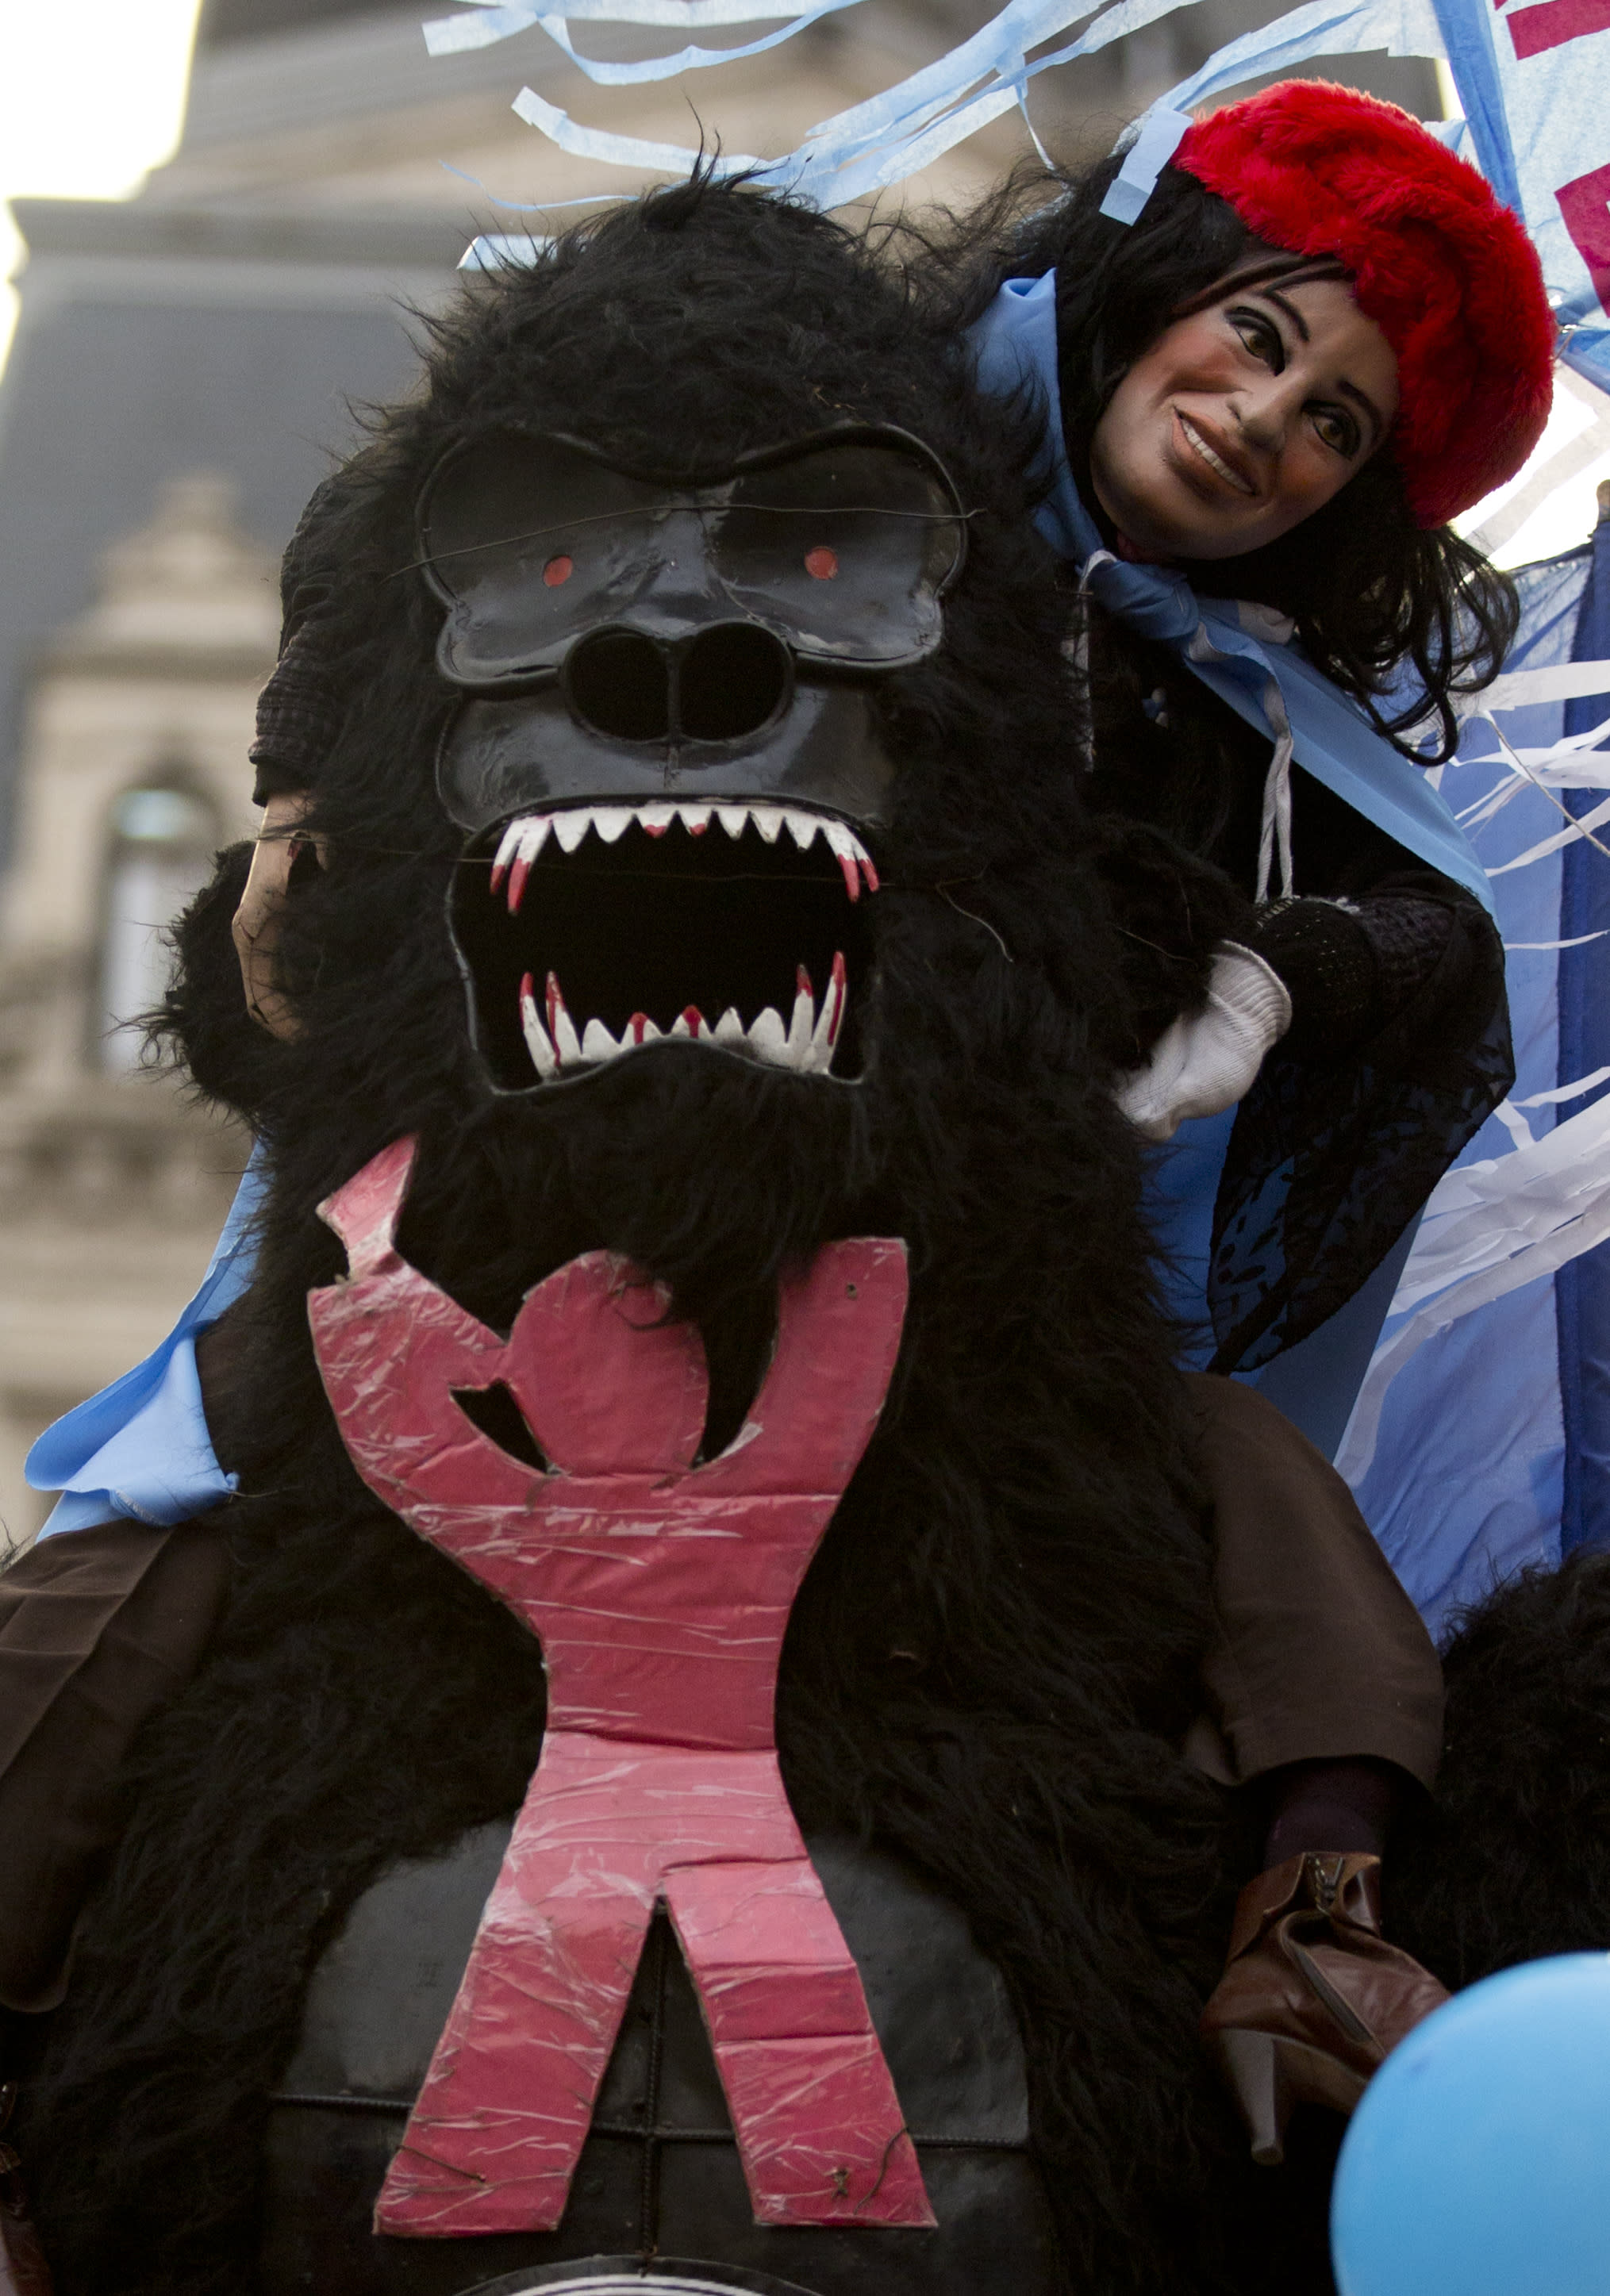 In this Oct. 17, 2013 photo, a doll of Argentina's President Cristina Fernandez sits on the shoulders of a fake gorilla with a Clarin newspaper logo attached to its chest, during a Peronist Loyalty Day rally, at the Plaza de Mayo in Buenos Aires, Argentina. The Supreme Court approved the country's four-year-old broadcast media law on Tuesday, Oct. 29, 2013, deciding that it's constitutional to force private news media monopolies to break themselves apart if they exceed government-imposed audience limits. The historic ruling is a huge victory for Fernandez and a bitter defeat for Grupo Clarin, which has been a leading voice against her administration. (AP Photo/Natacha Pisarenko)